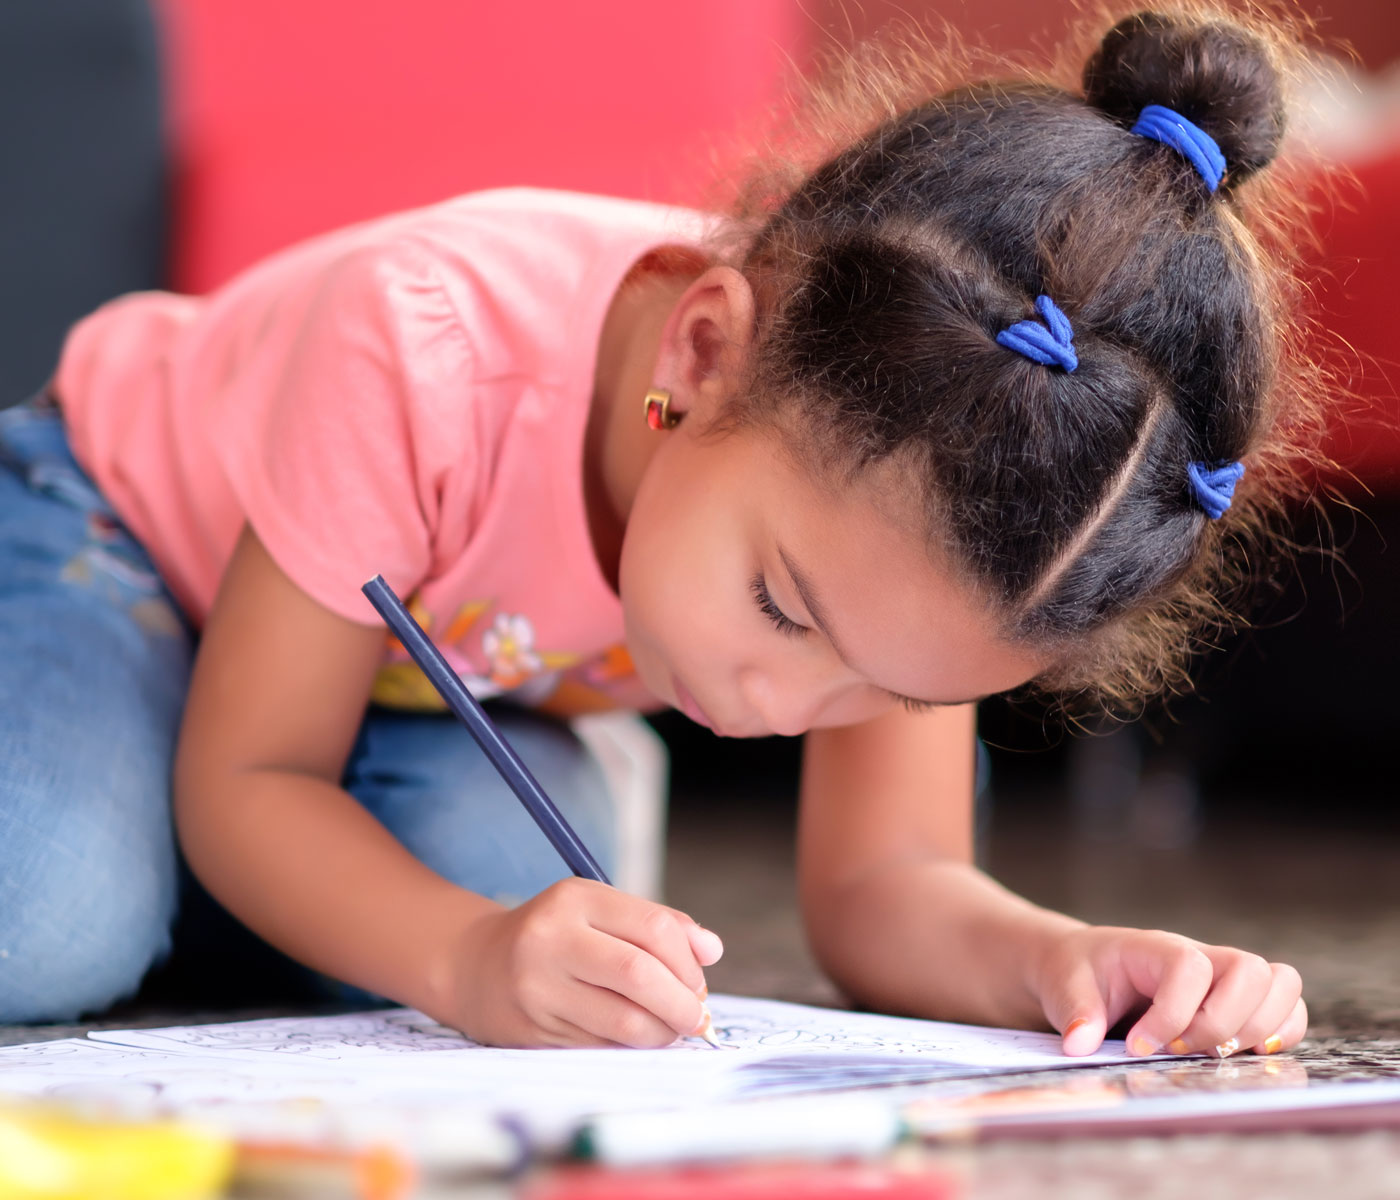 Little girl drawing very intently